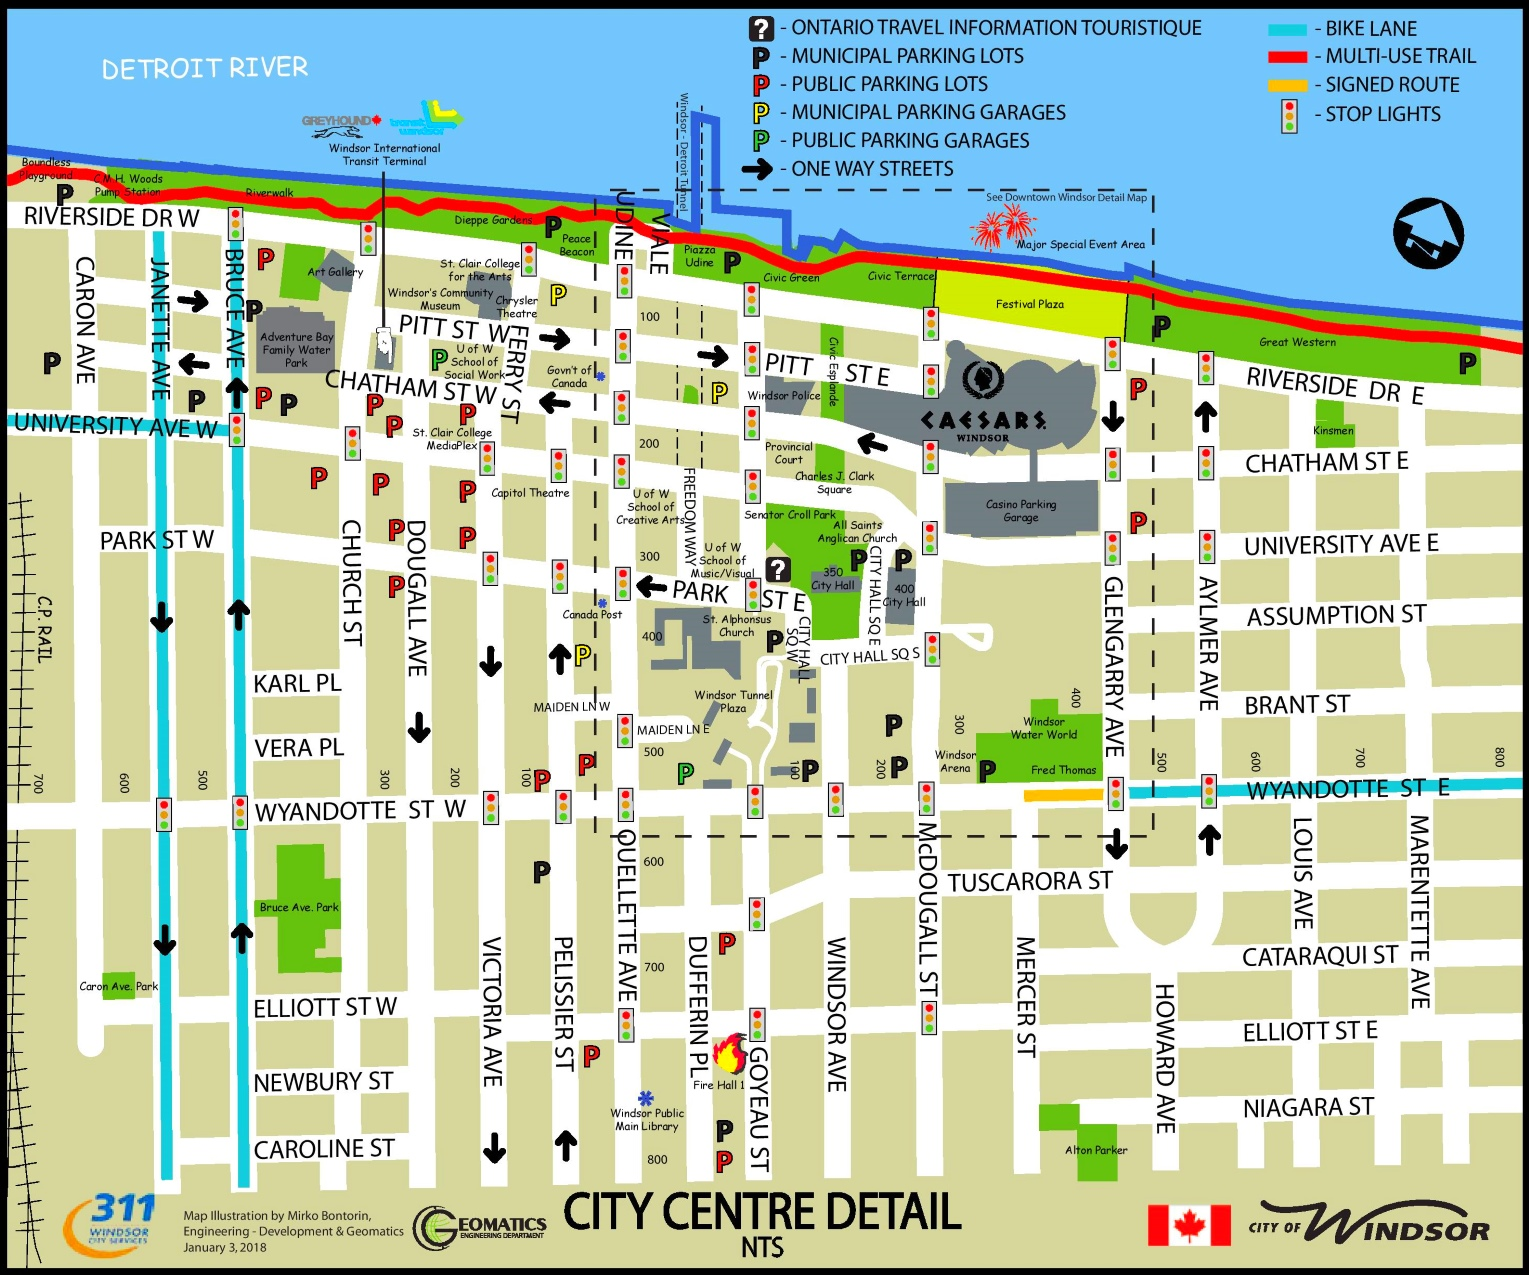 City Map Of Canada.Windsor City Center Map